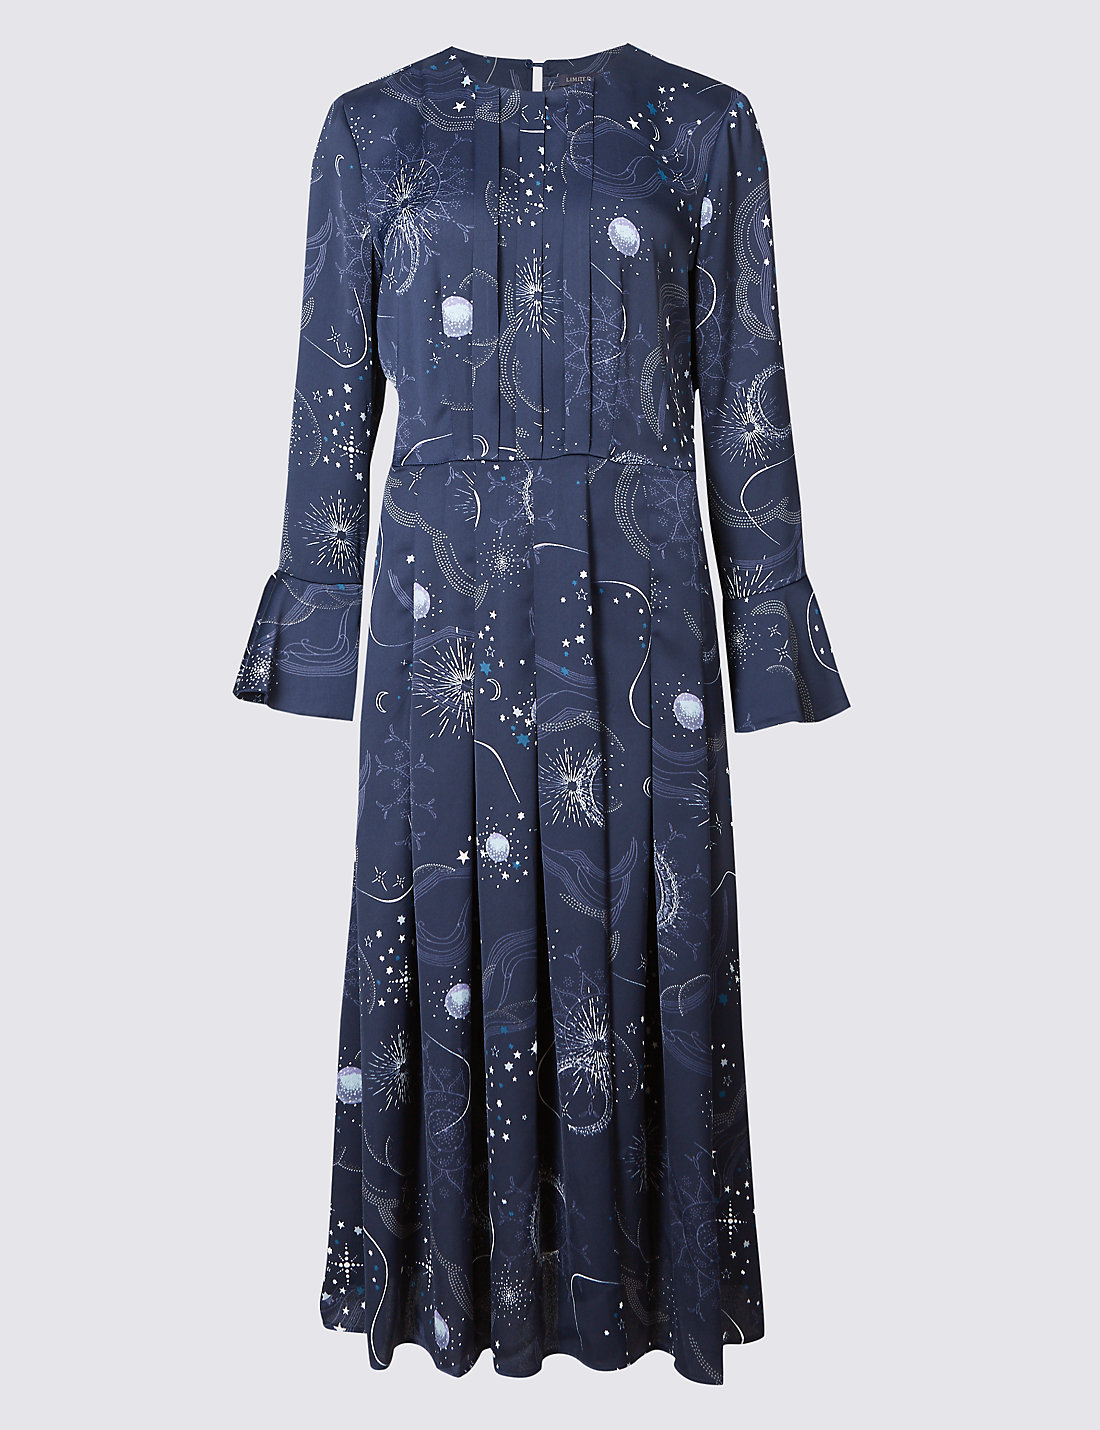 Marks and spencers celestial dress